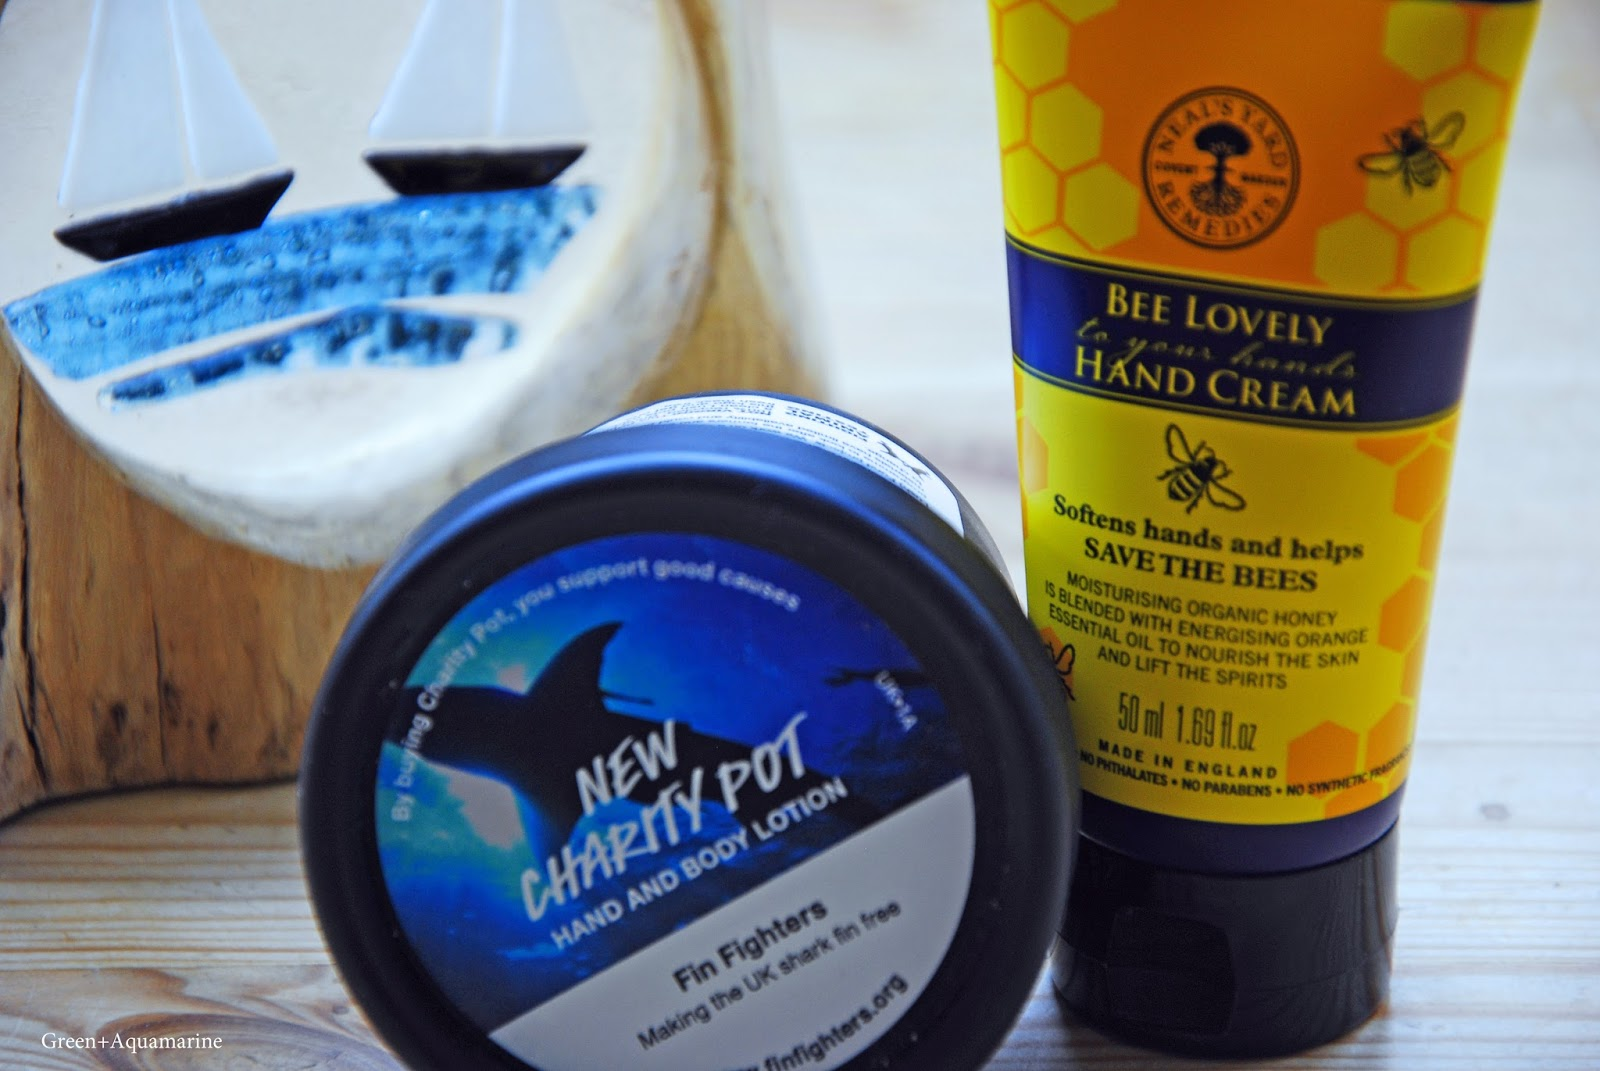 Natural beauty: my favourite skincare and bodycare products. Featuring Neal's Yard, Lush, Boots and Elemis.